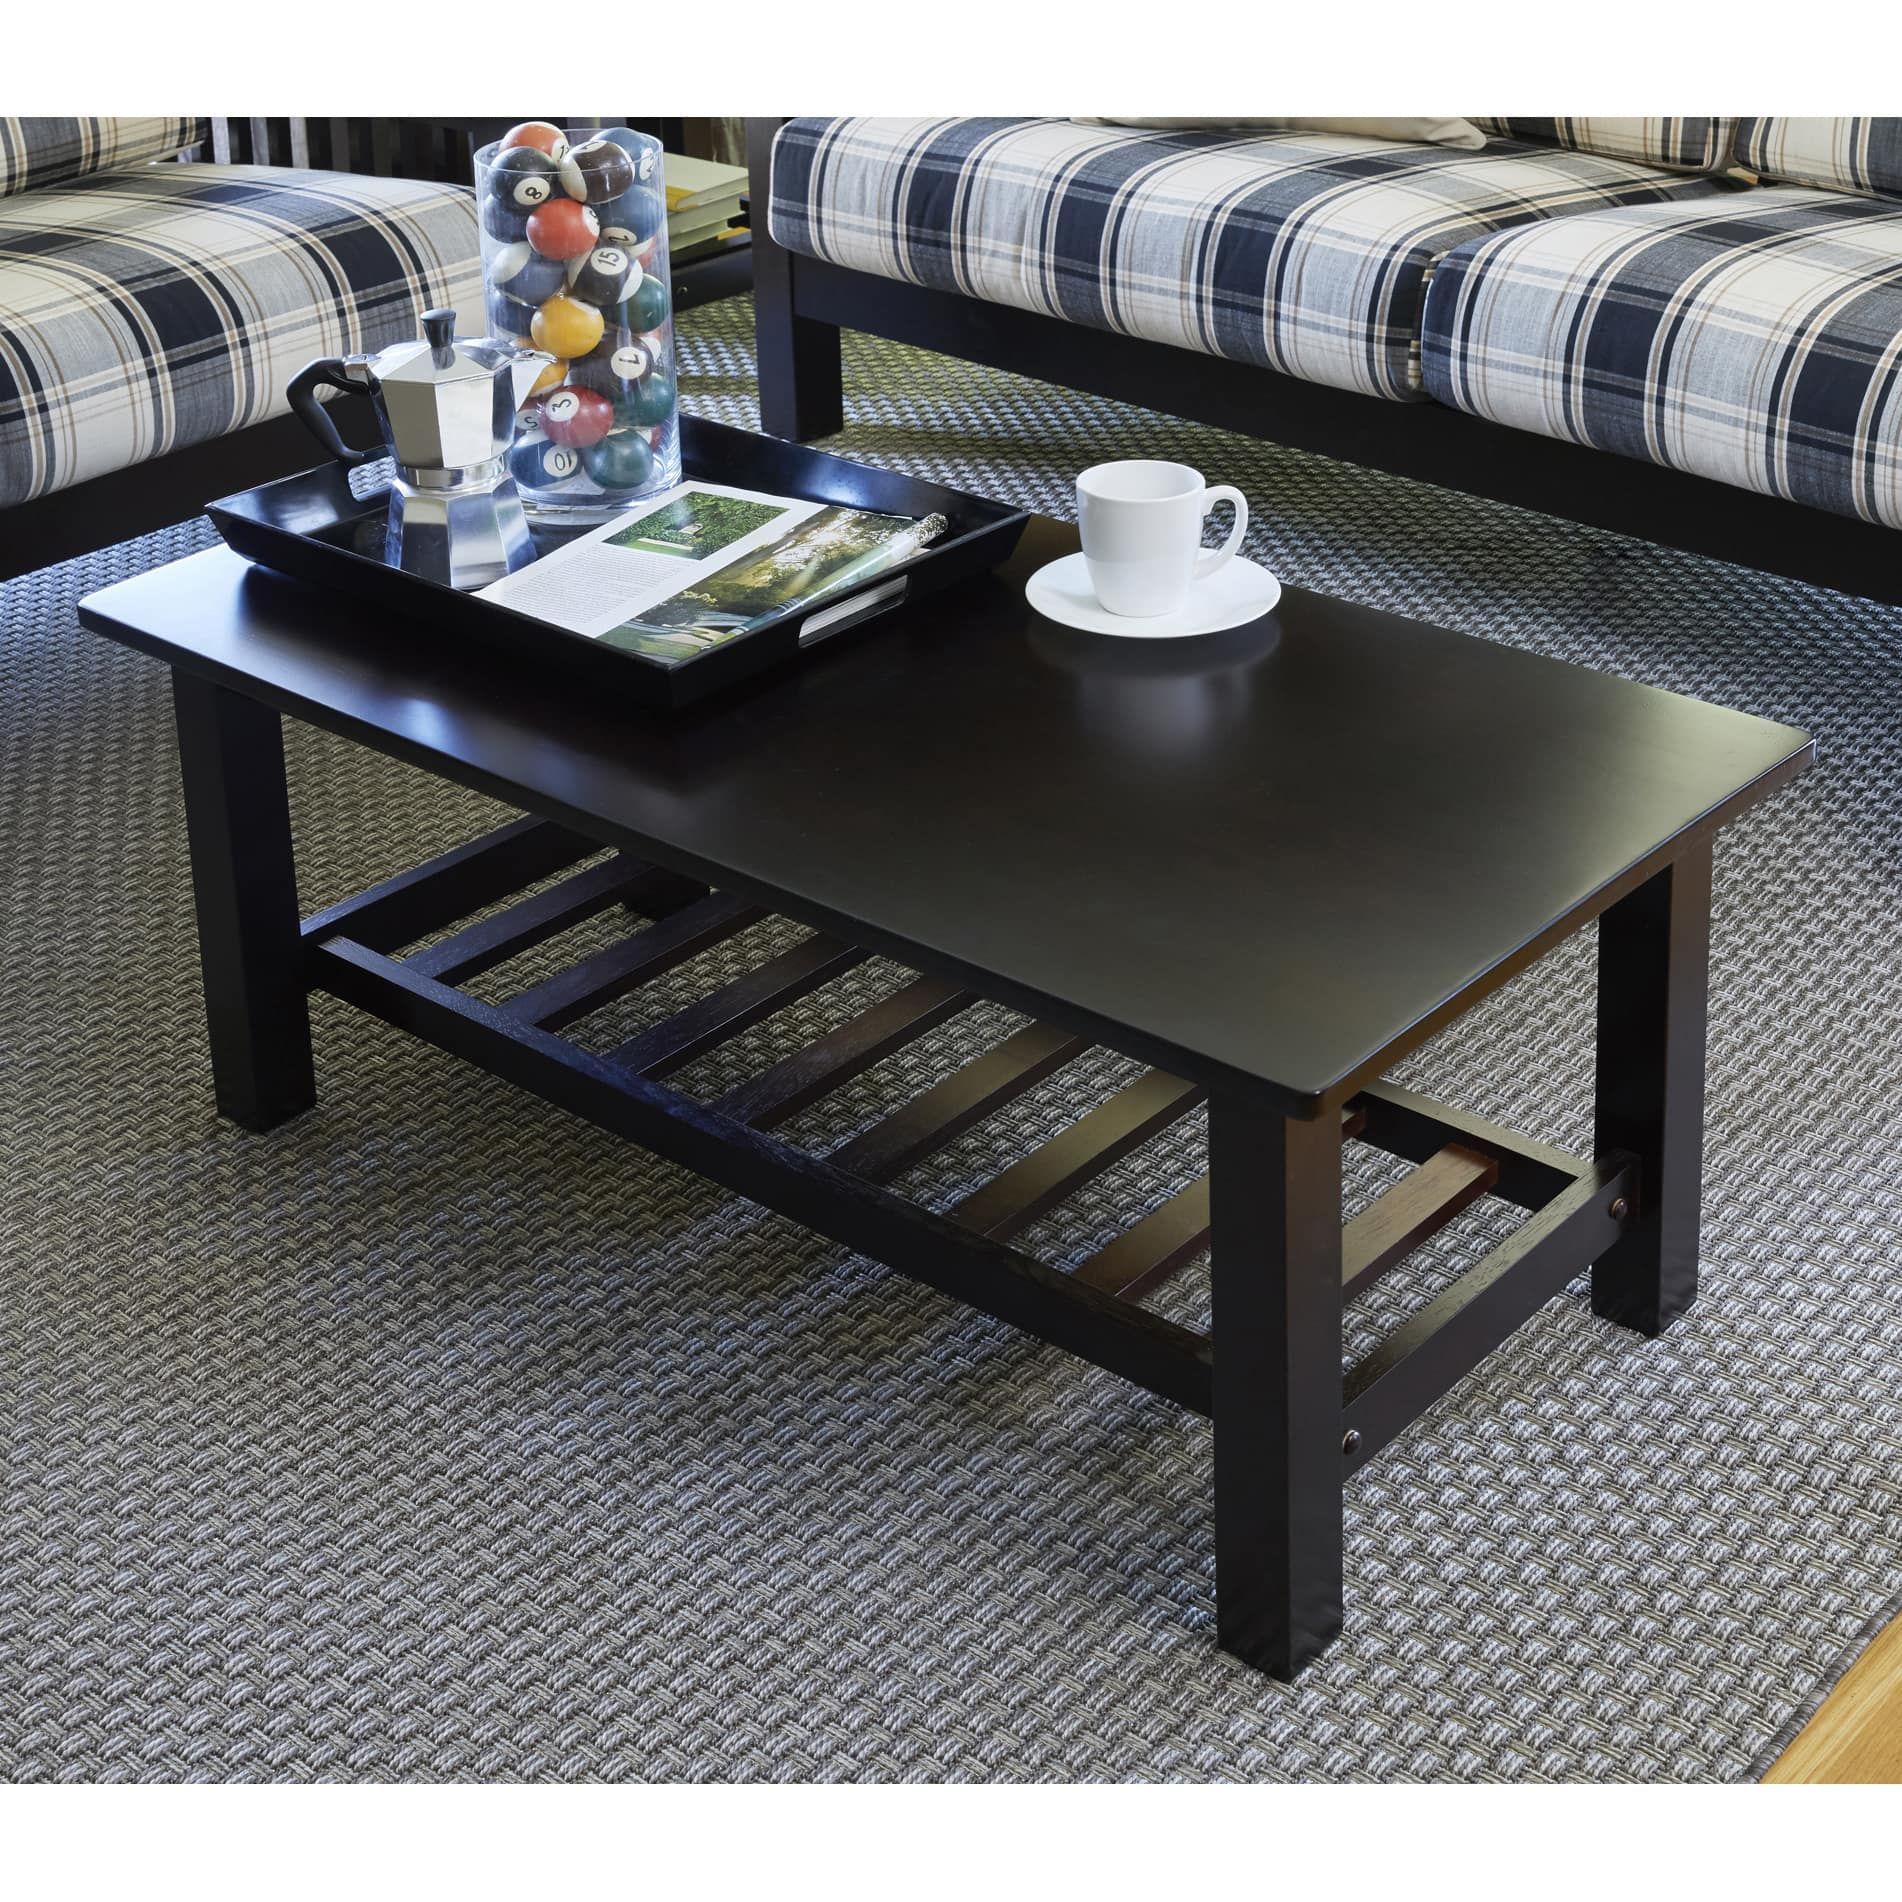 d10d6dc4885904c3e932e91661d7f3d6 Top Result 50 Fresh Espresso Coffee Table Picture 2017 Zzt4